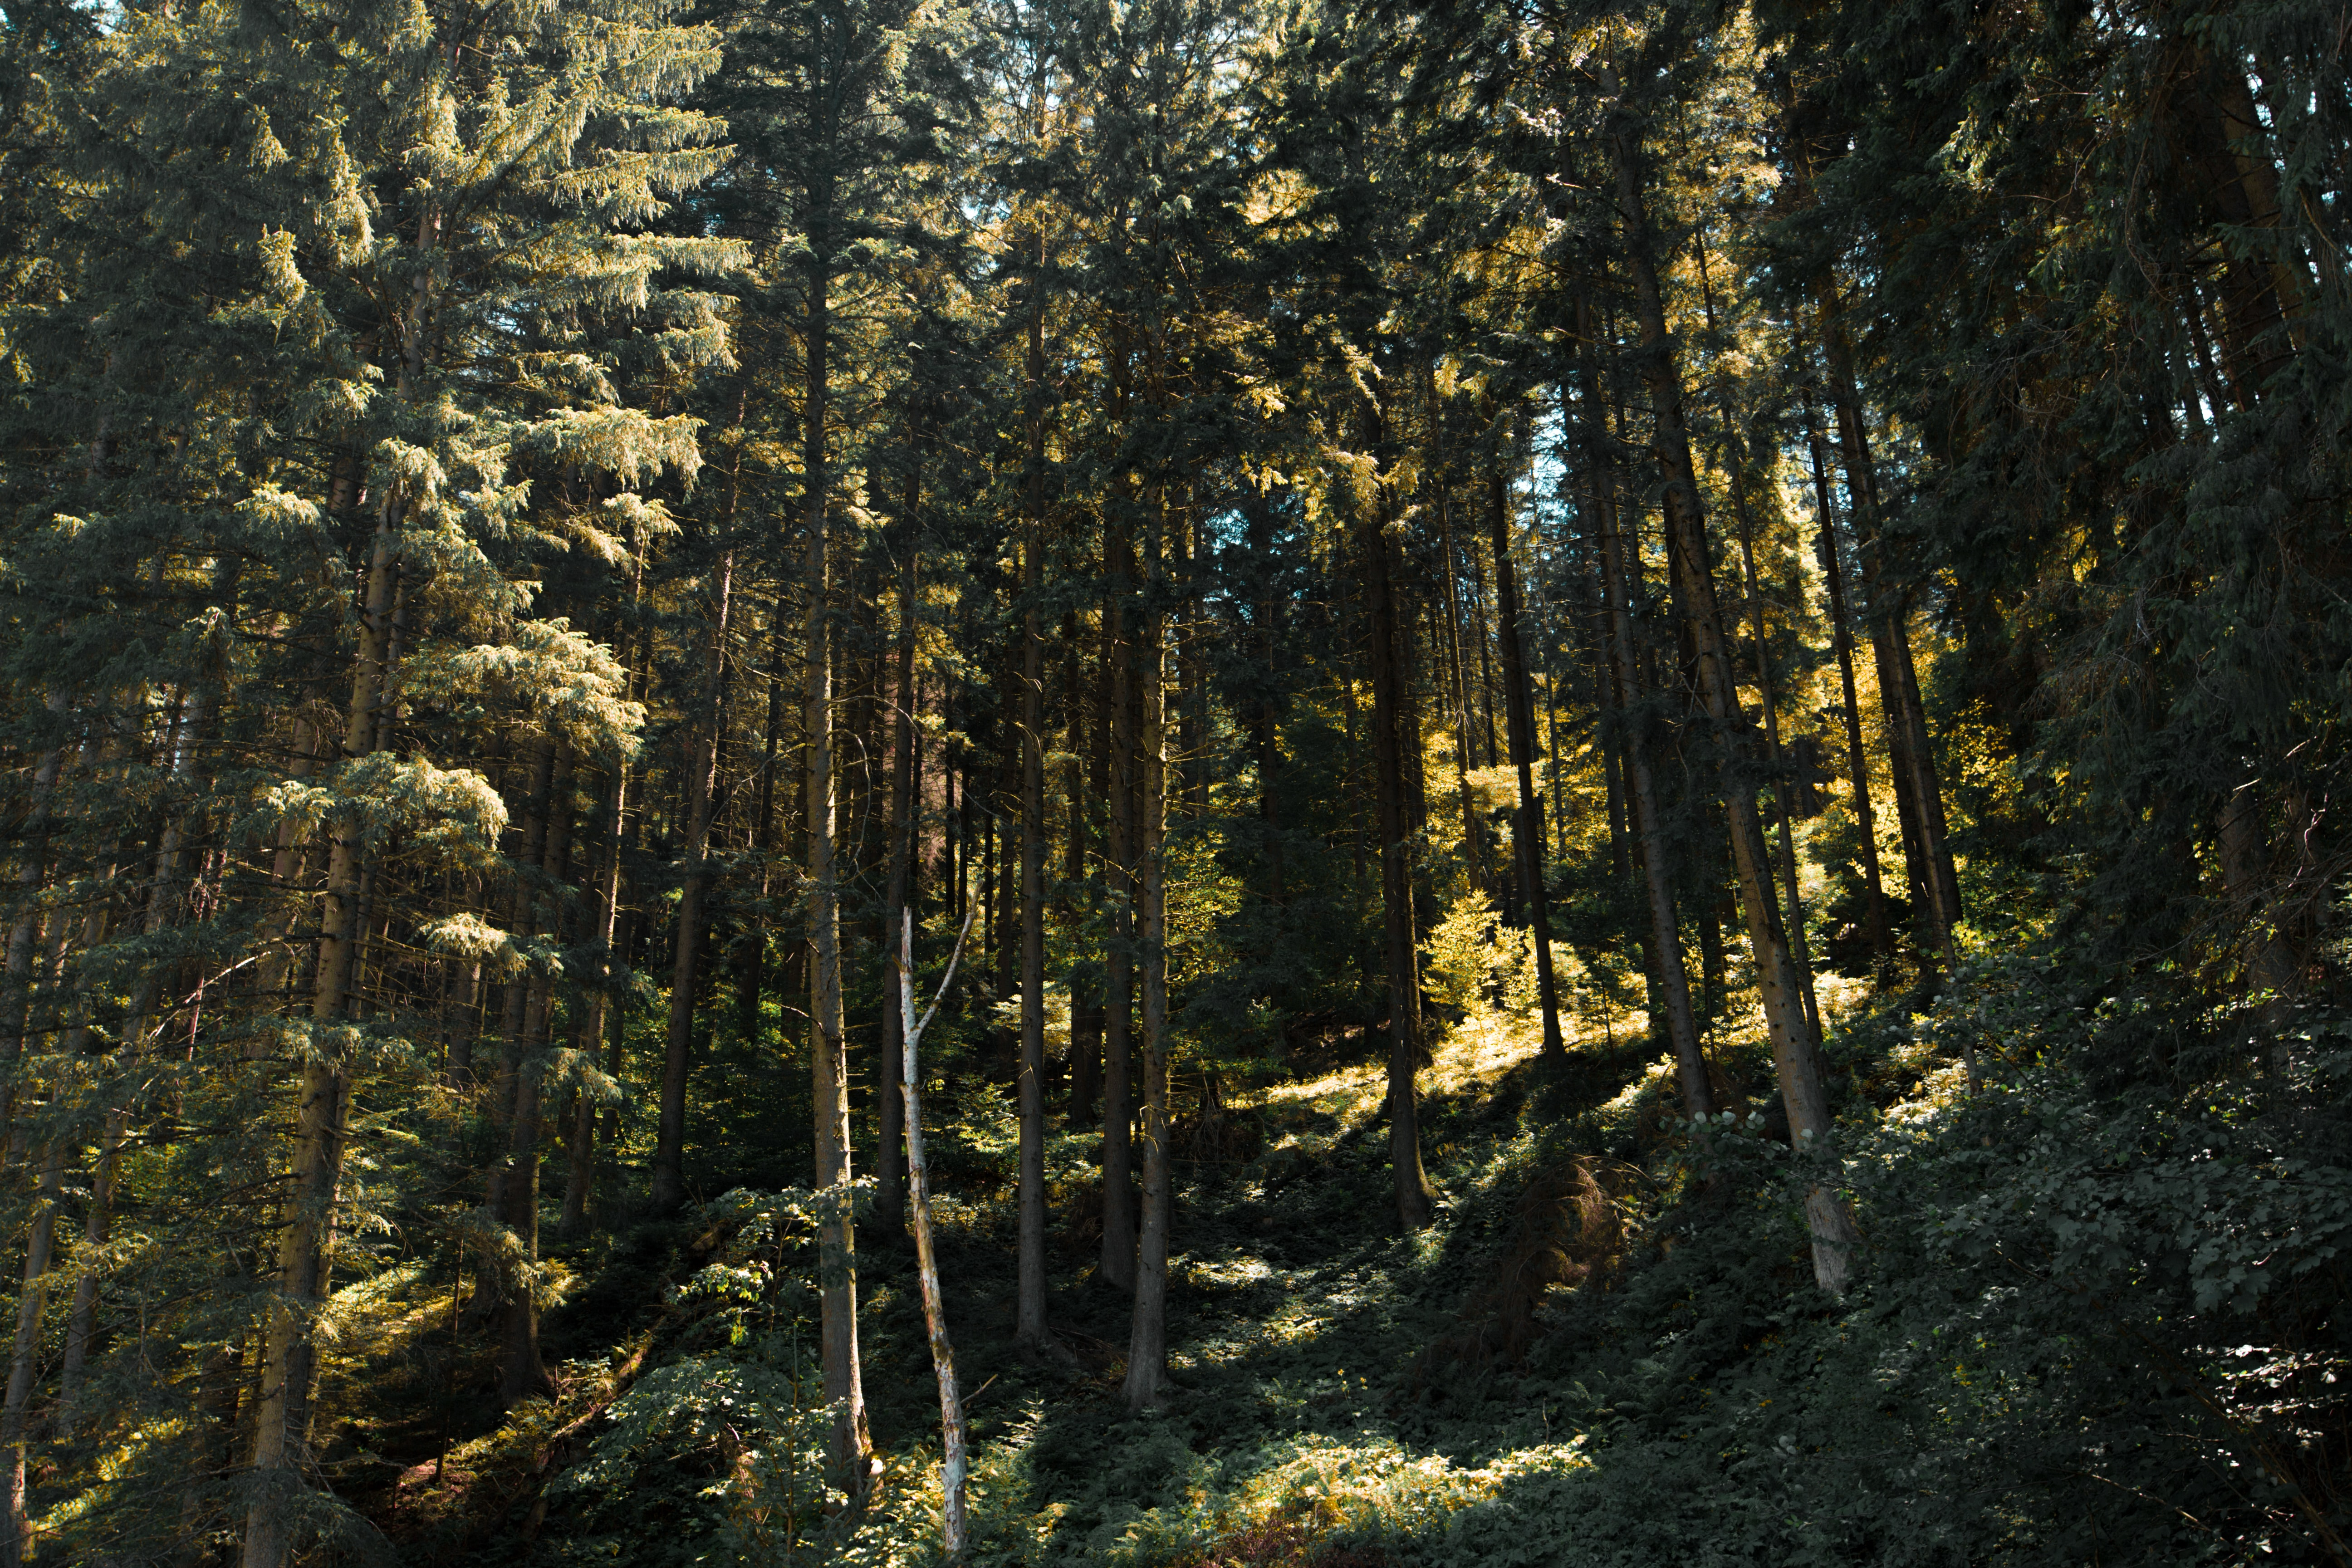 forest trees during daytime